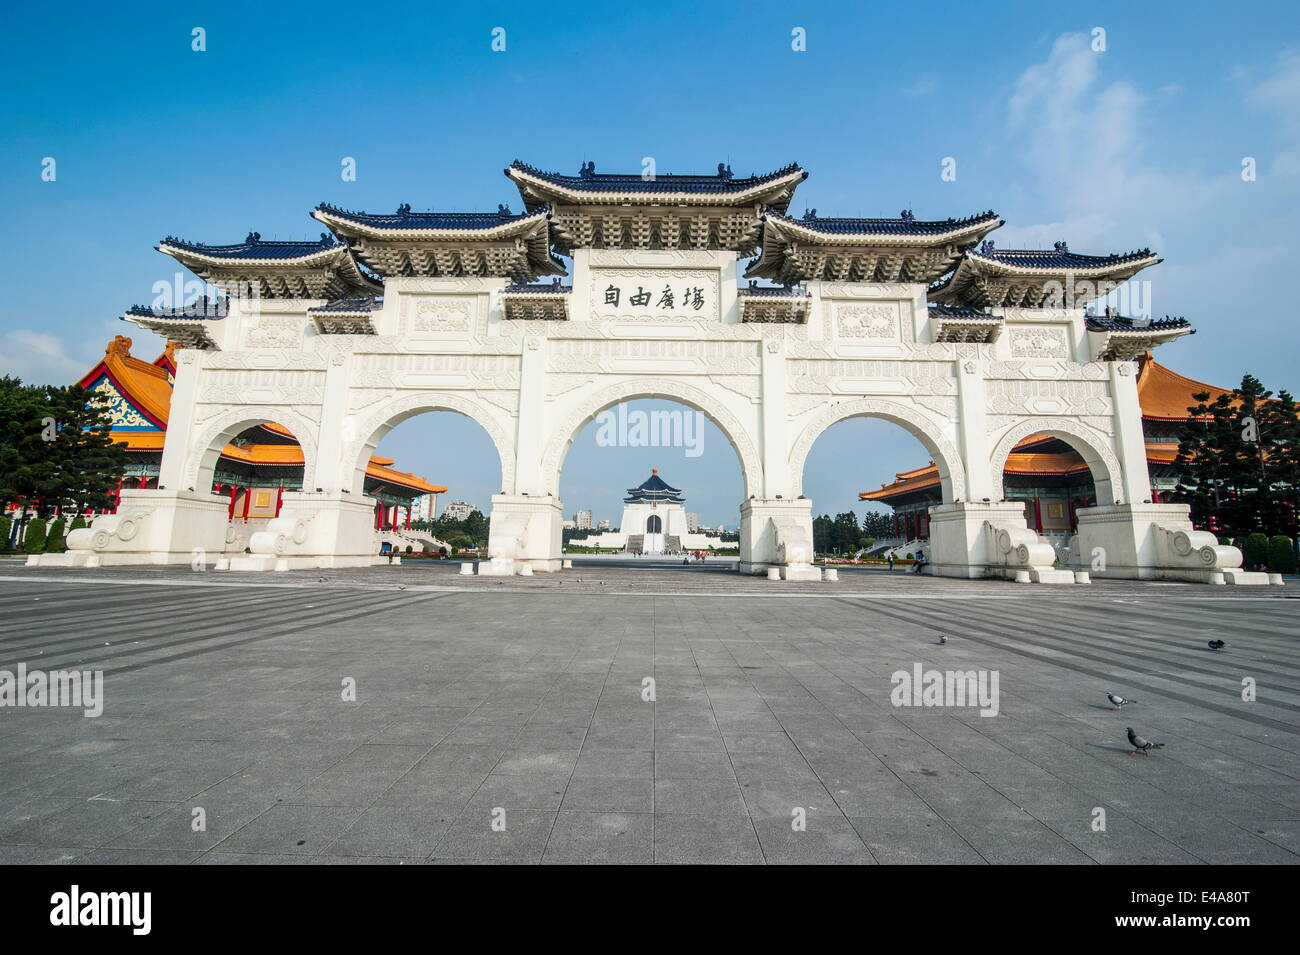 Huge gate in front of the Chiang Kai-Shek Memorial Hall, Taipei, Taiwan, Asia - Stock Image